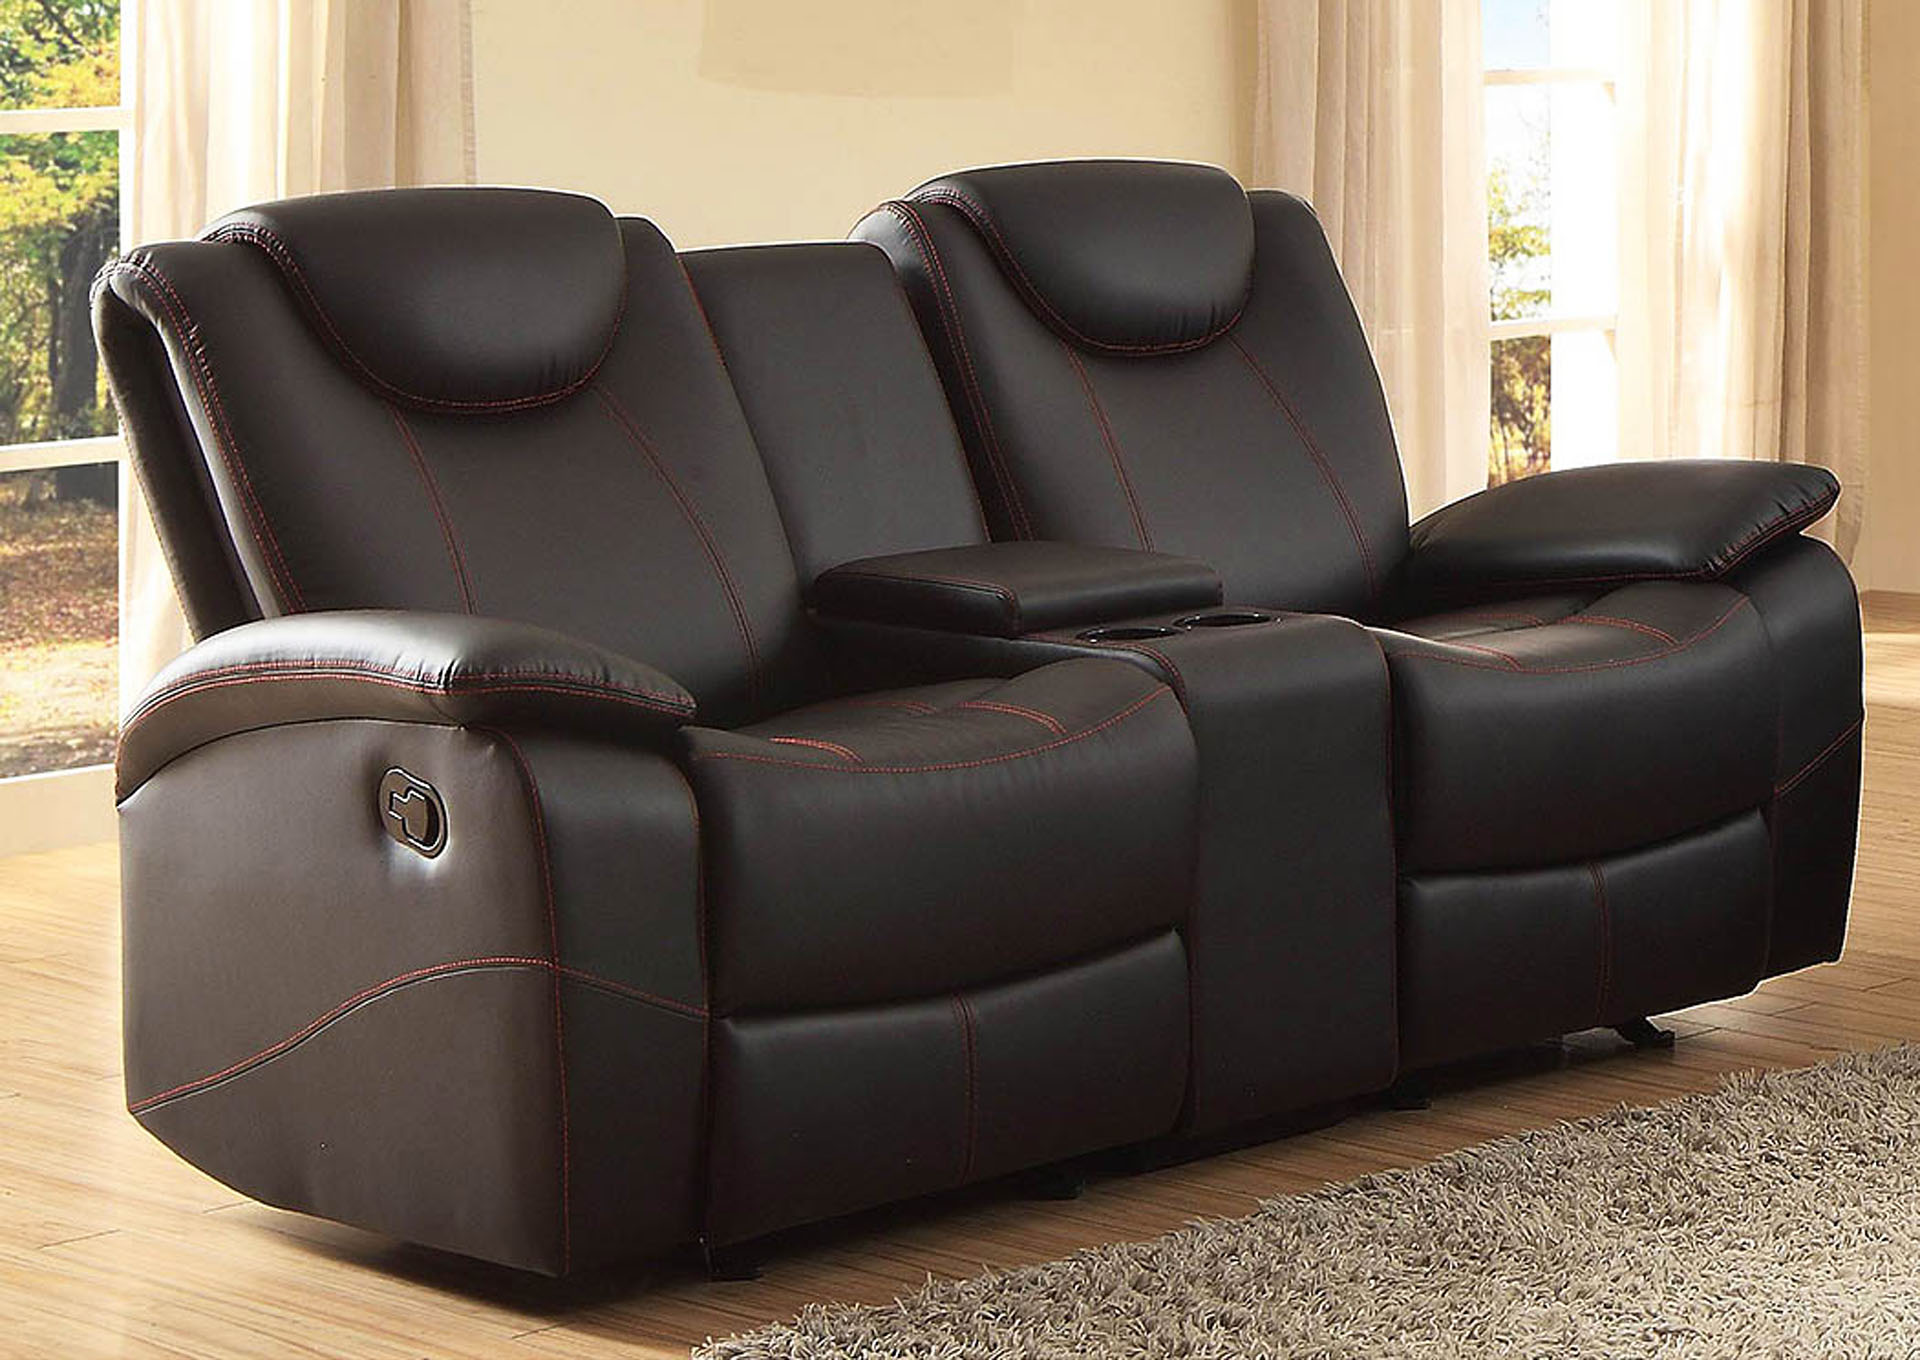 Long Island Discount Furniture Talbot Black Double Glider Reclining Loveseat W Center Console